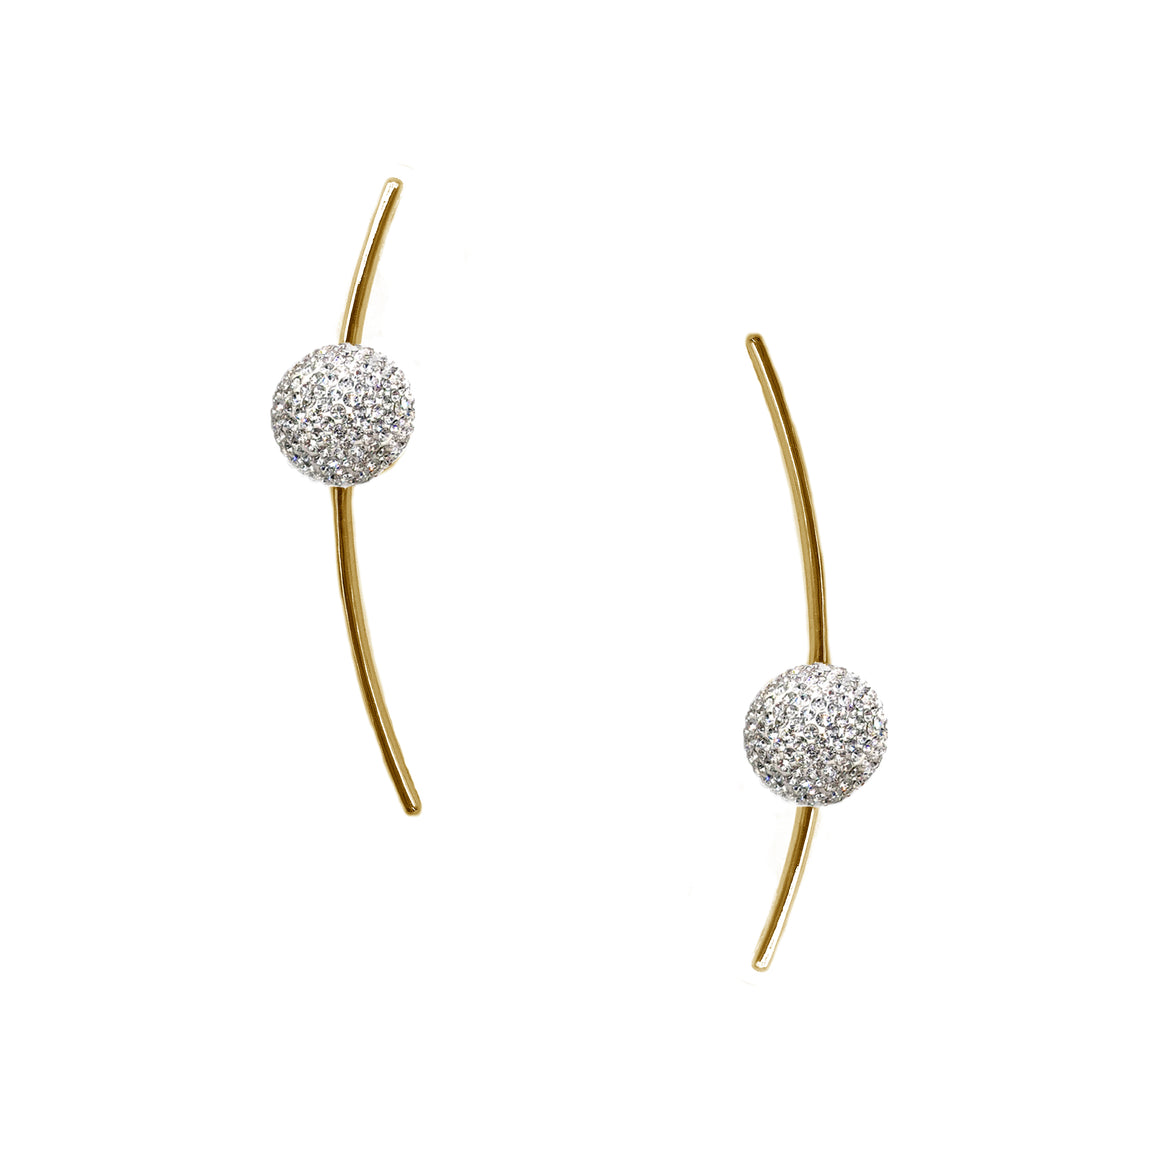 Crystal Ball Curve Bar Earrings, Earrings, Tuleste, Tuleste